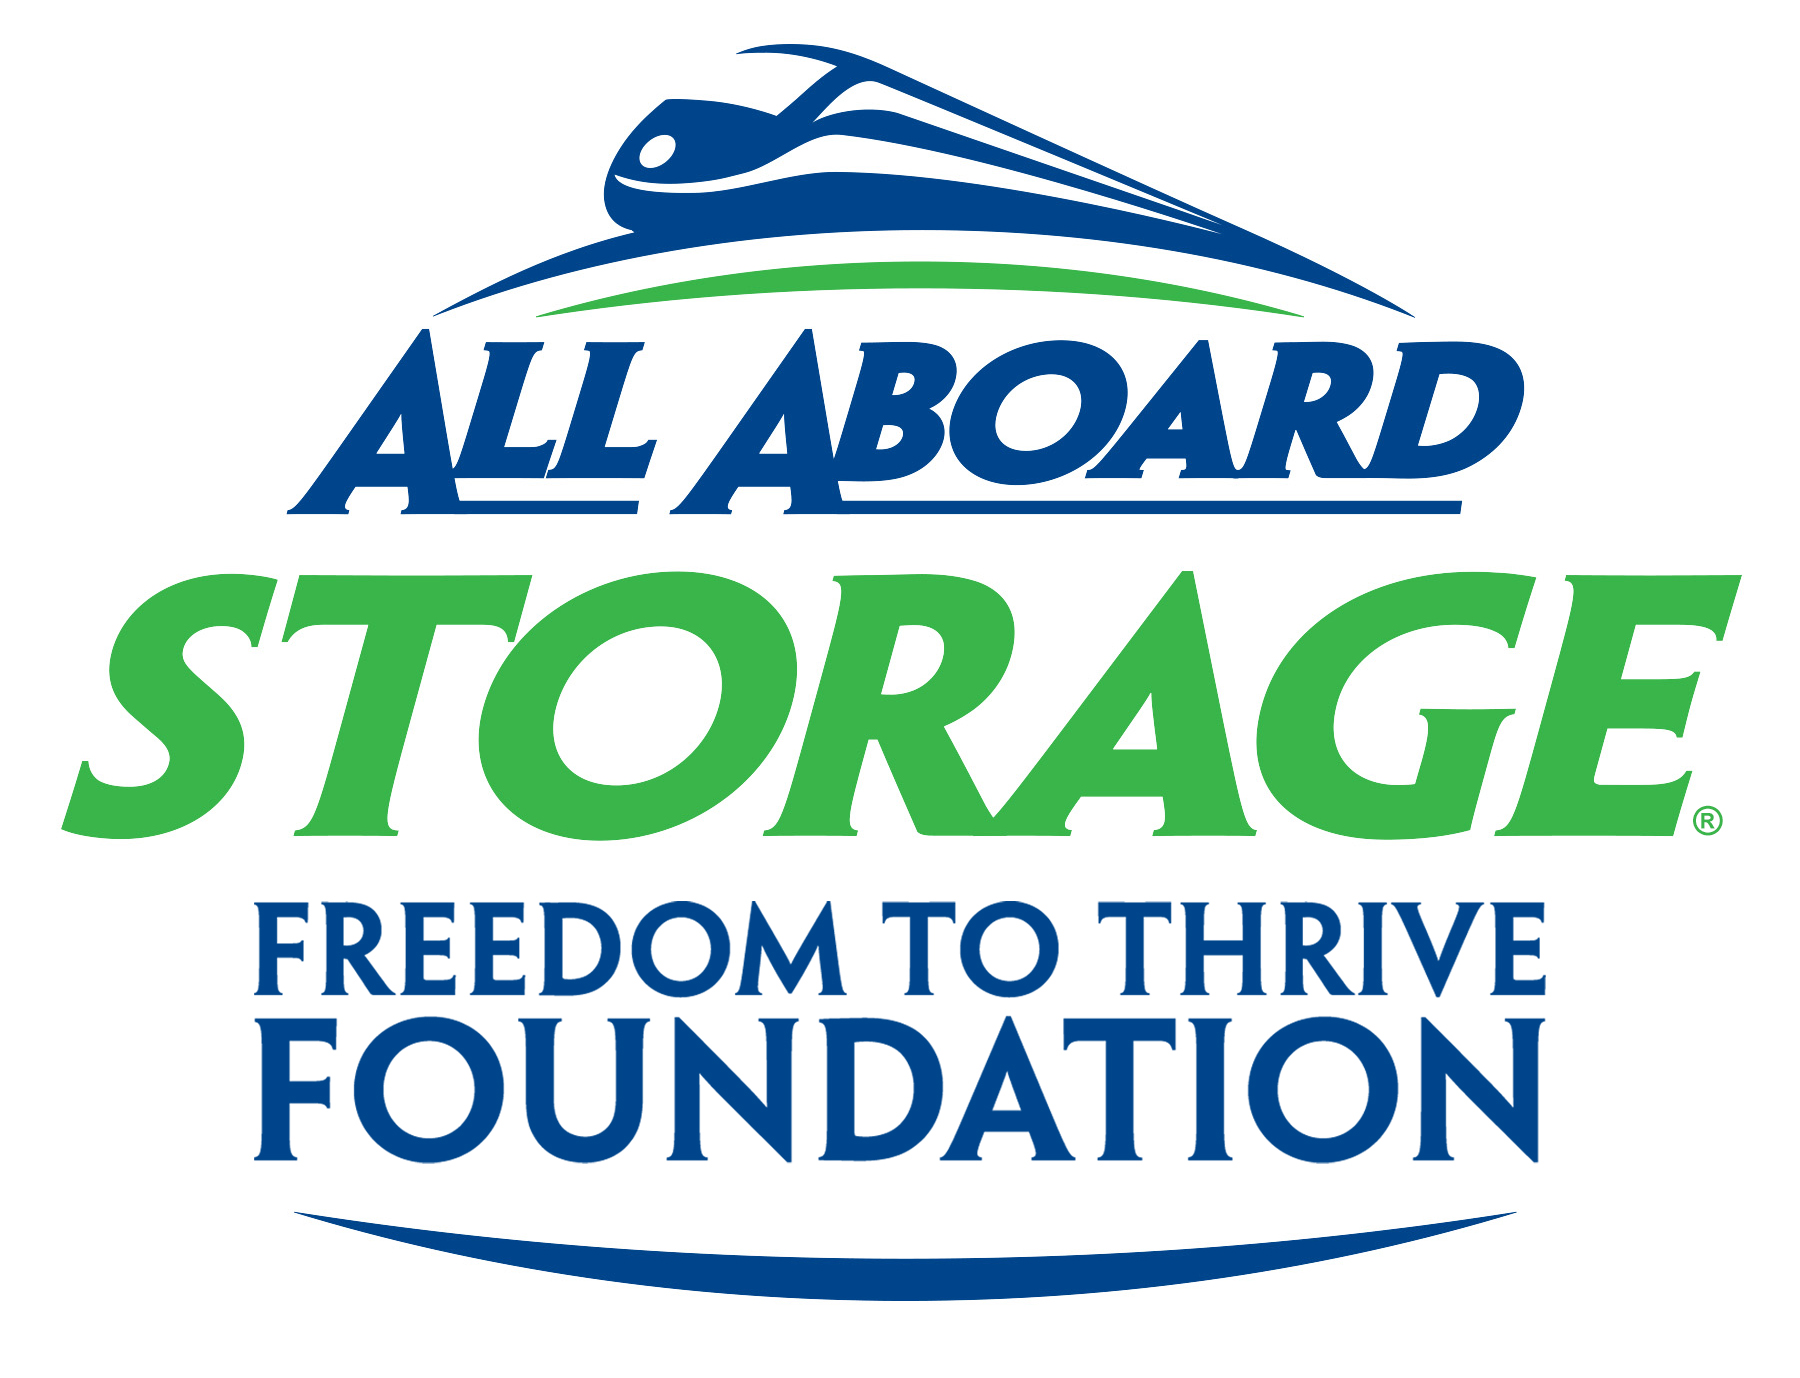 All Aboard Storage Freedom to Thrive Foundation